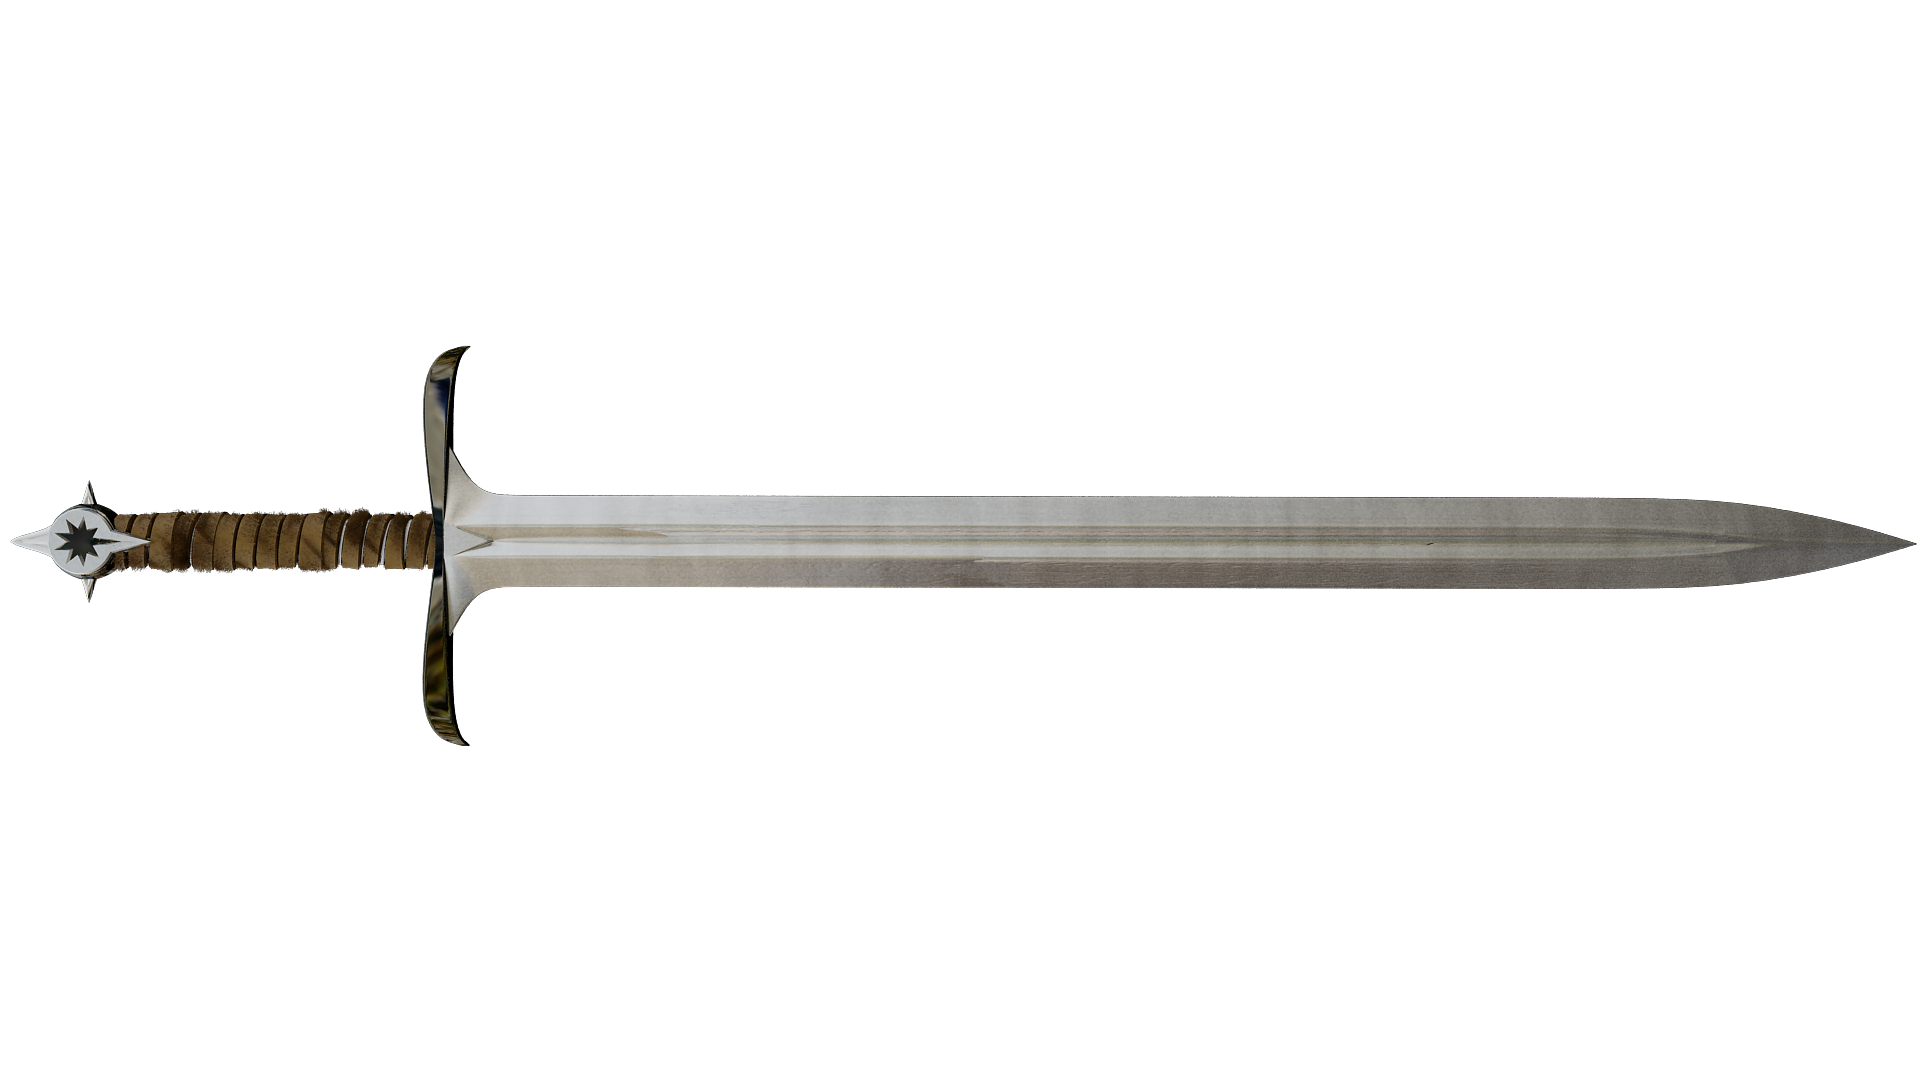 Topic des absences Sword-hd-png-sword-png-image-1920